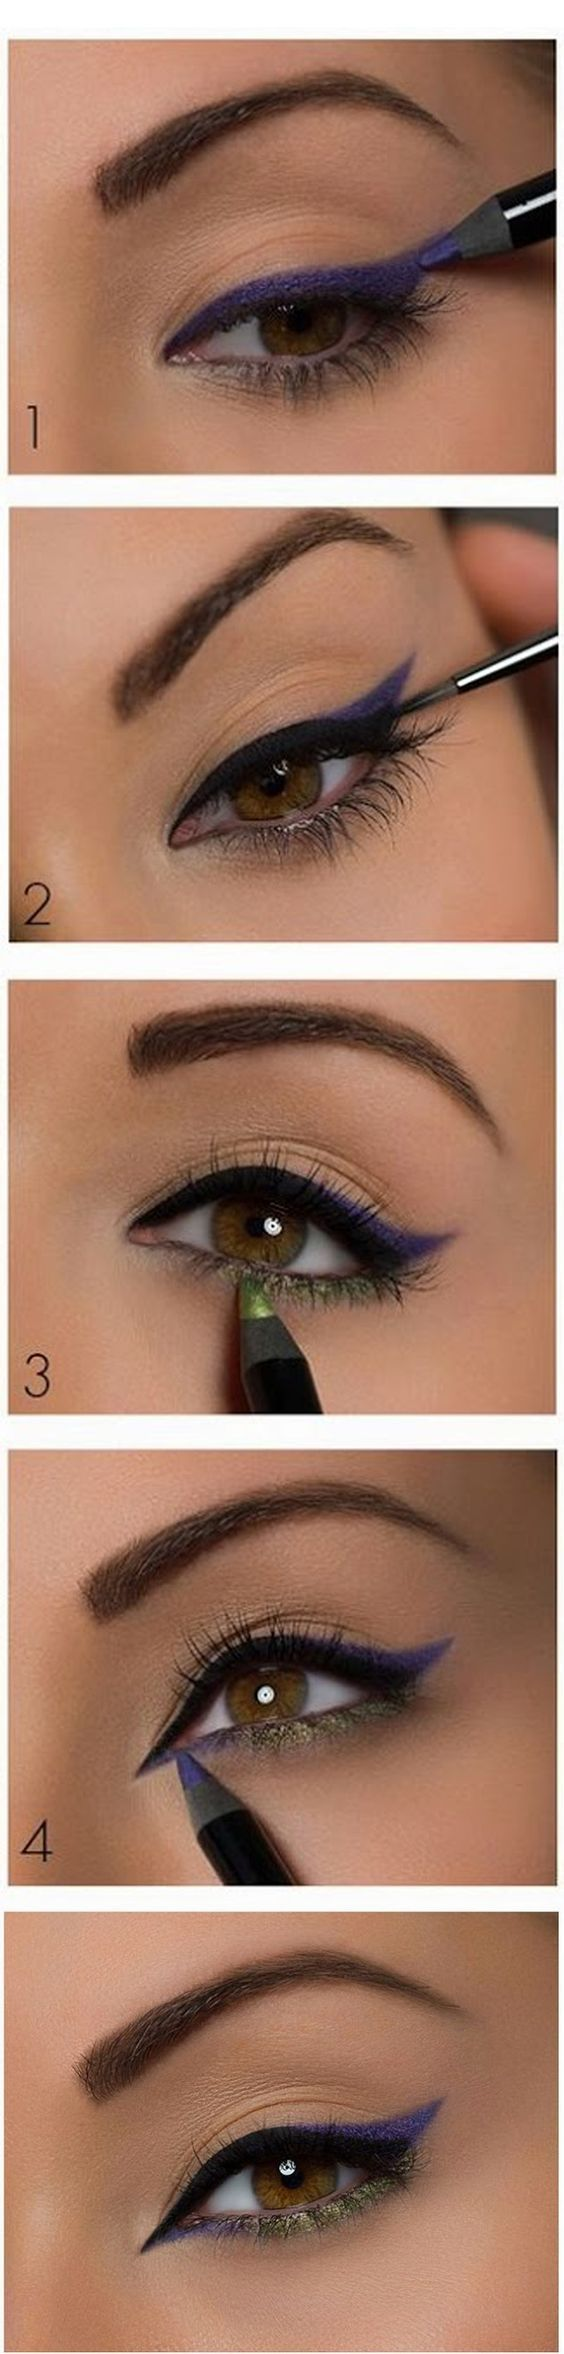 Makeup Tips and Tricks You Cannot Live Without!